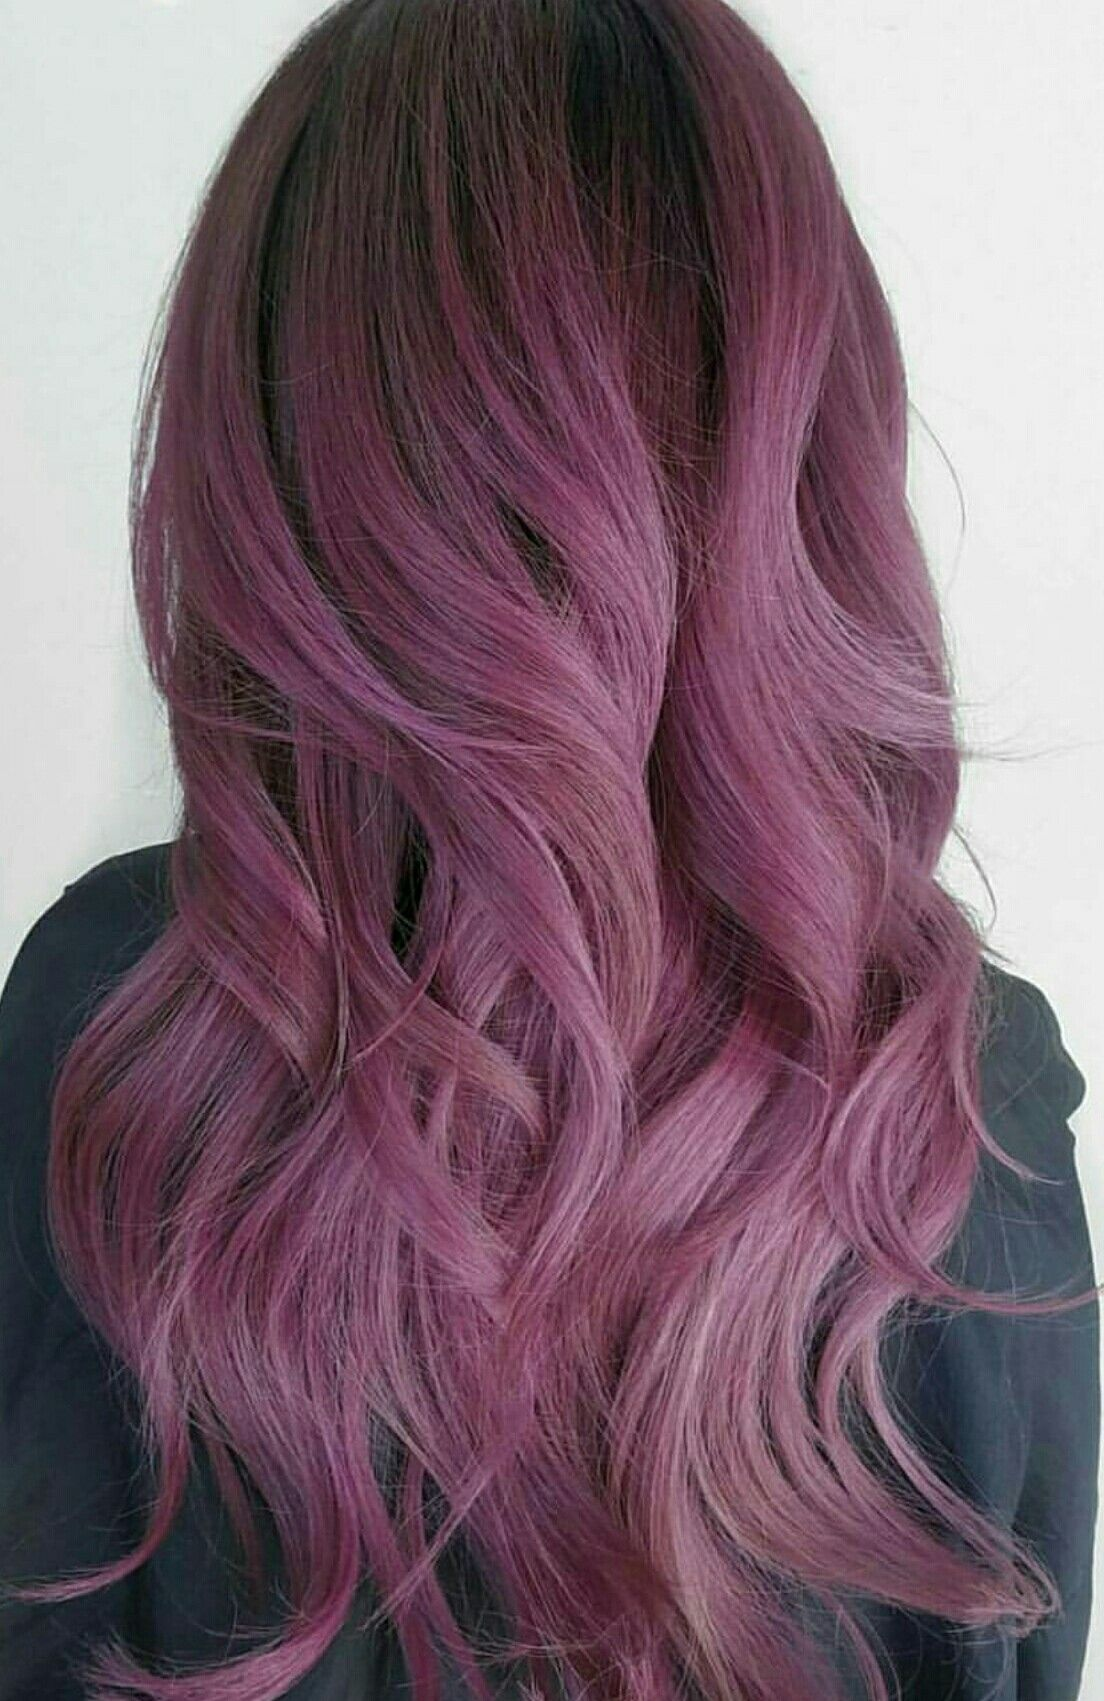 Dyed Hairstyles Extraordinary Lavender Hairsammiiwang Instagram  Hair Color  Pinterest